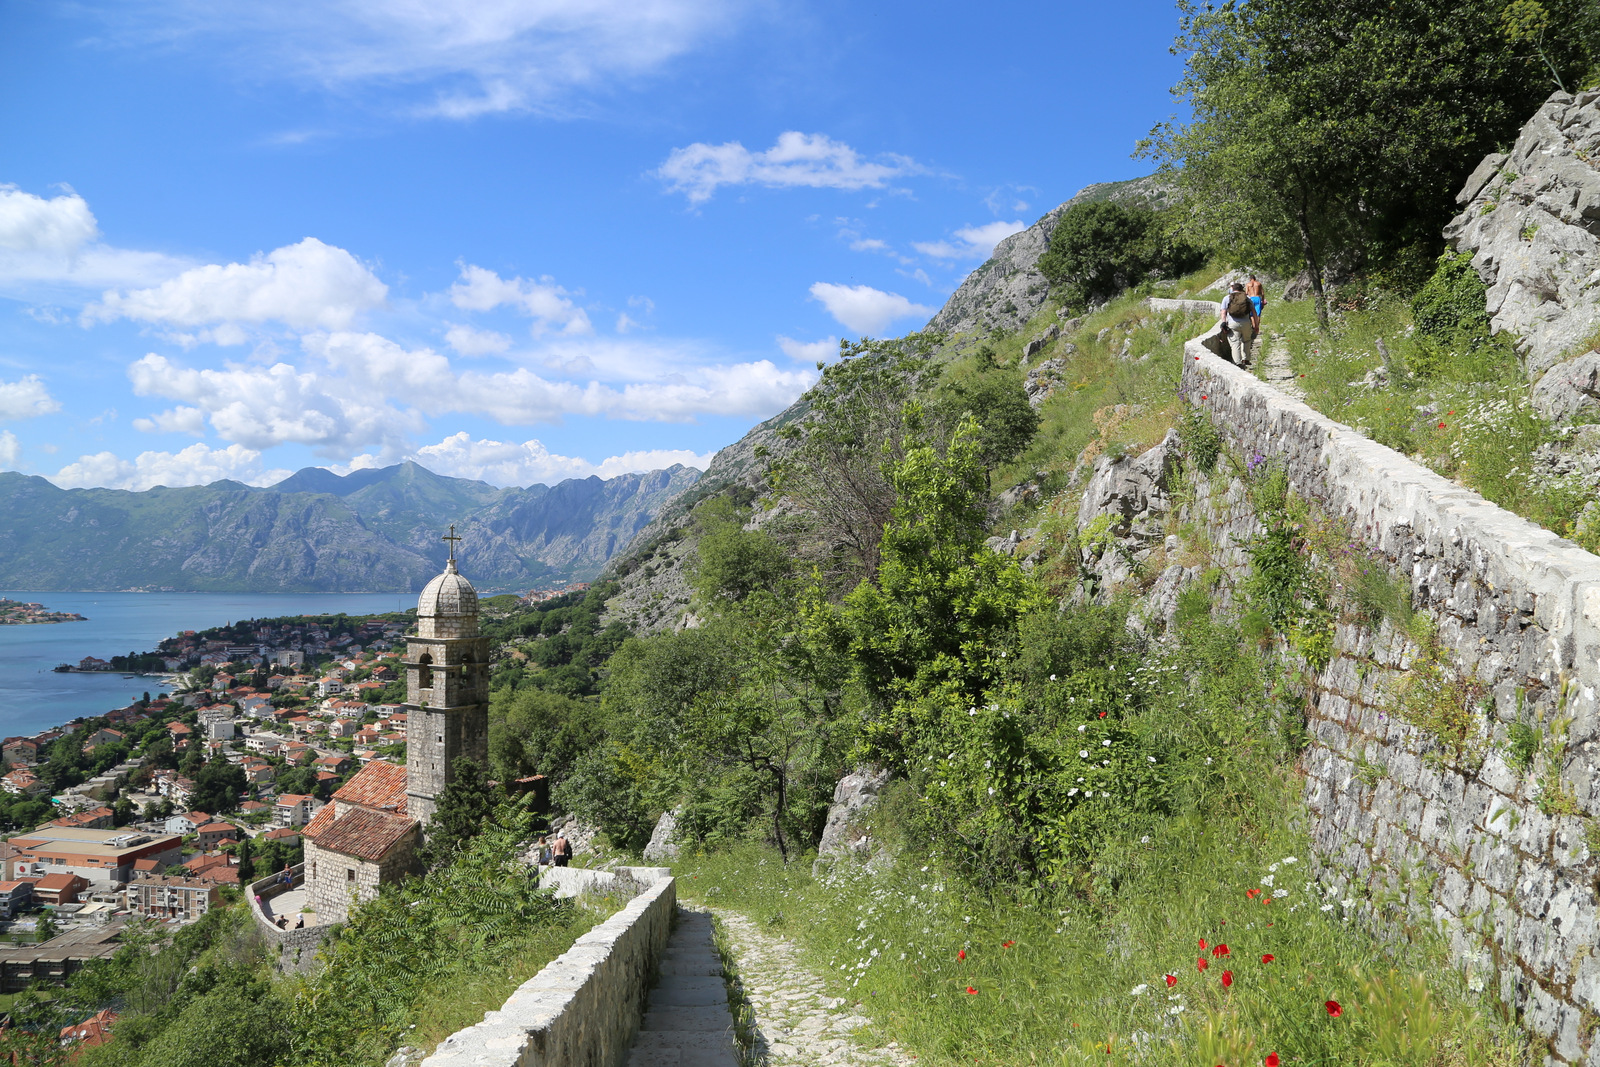 Kotor, on the way up to the fortress